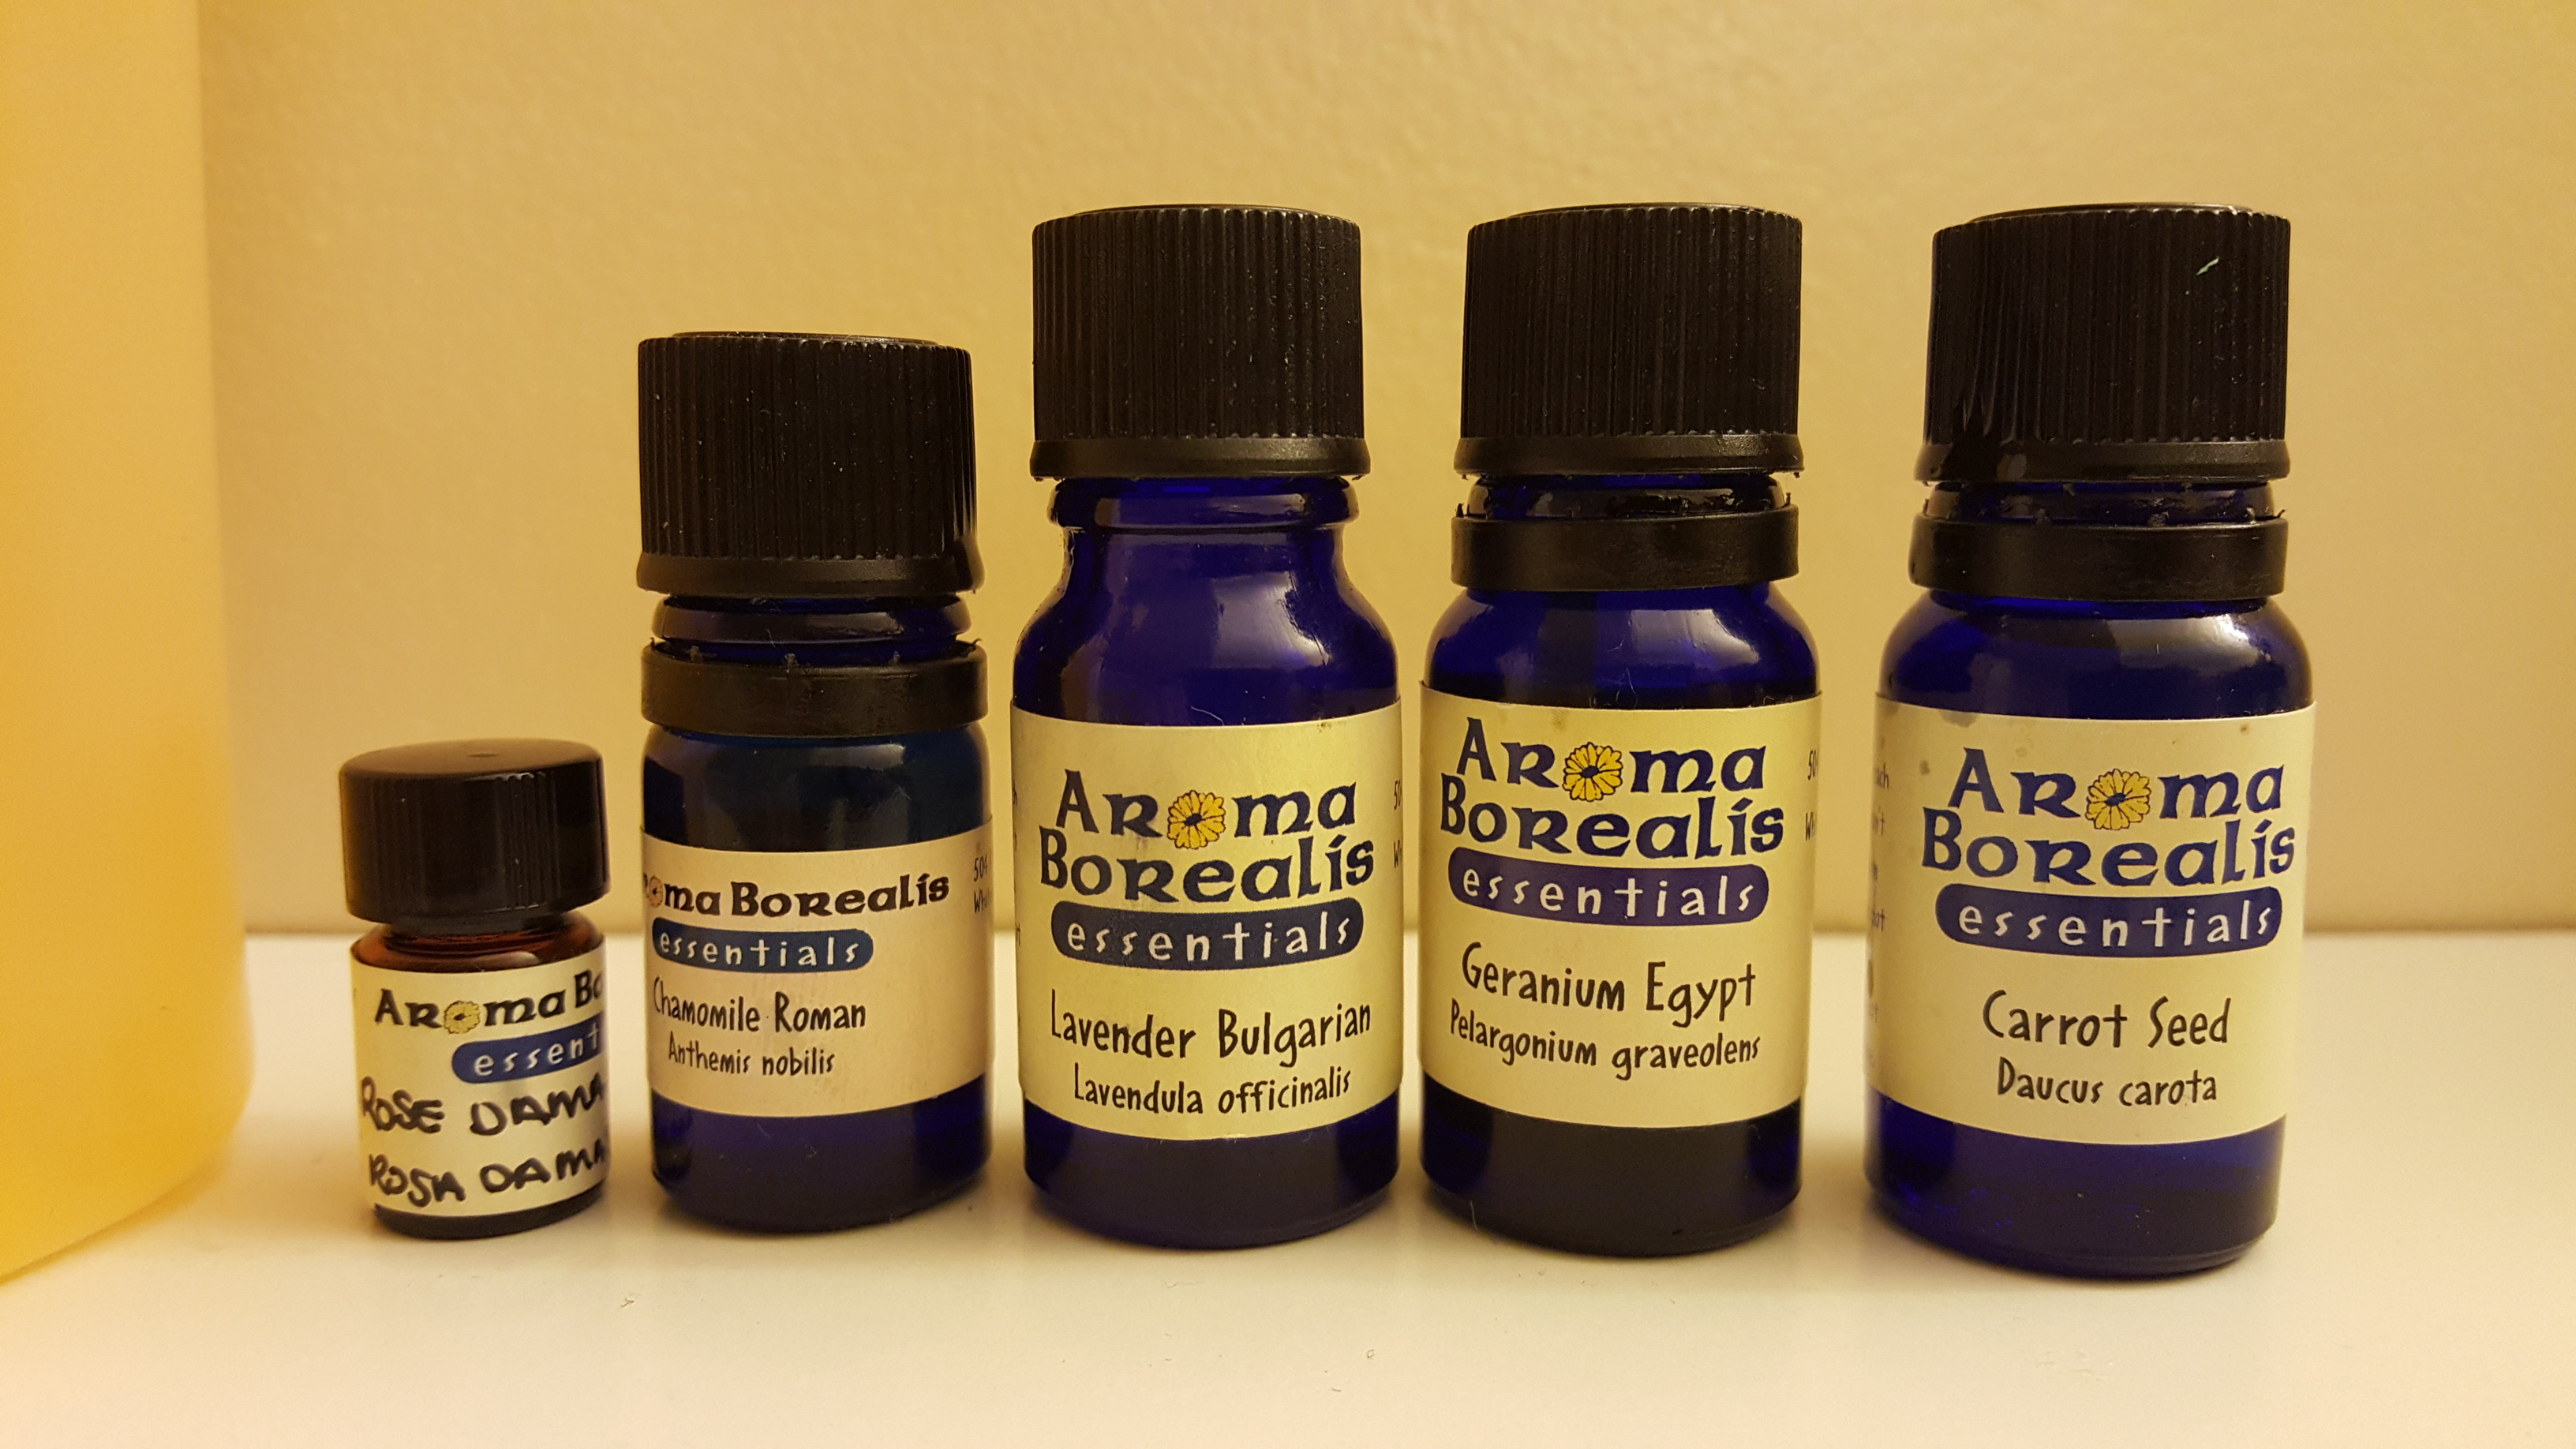 Picture of Essential Oils and Carrier Oil